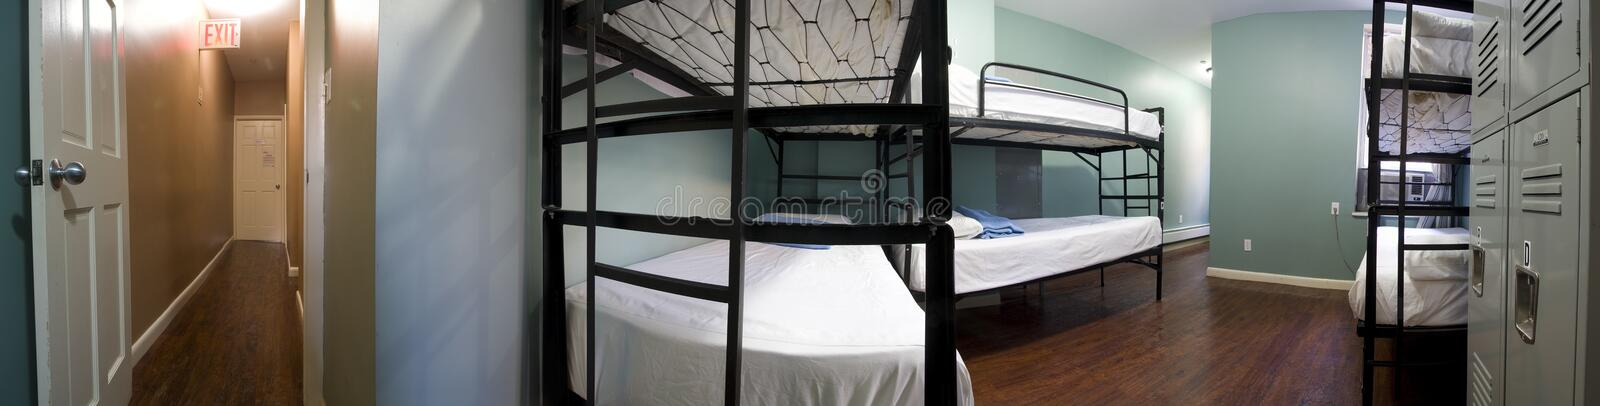 Accommodations. Panoramic view of accommodations in a hostel royalty free stock photos